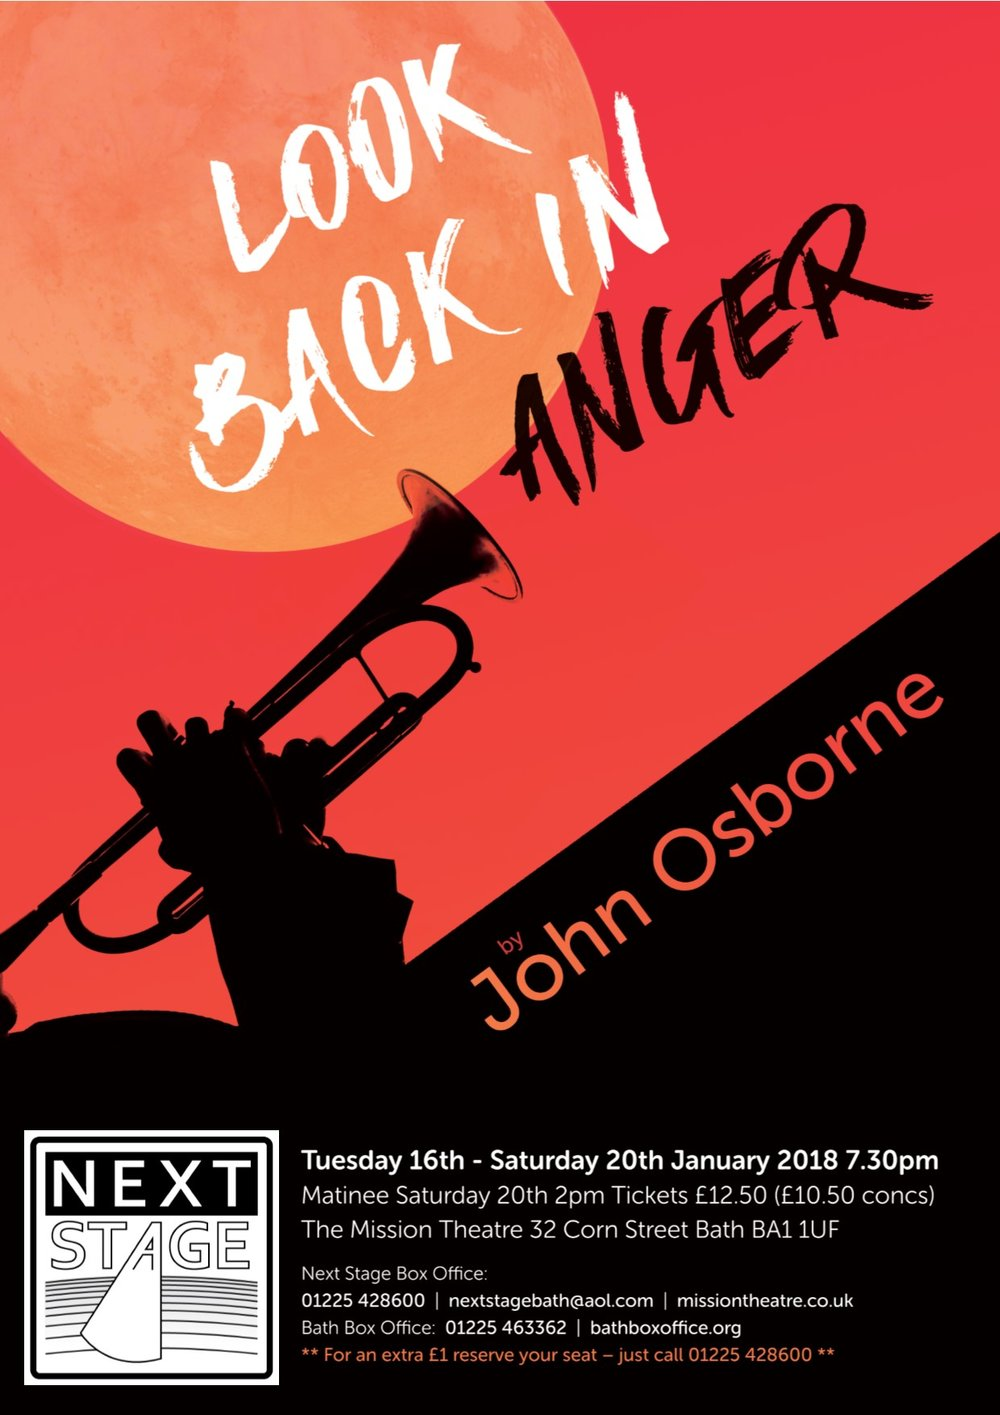 Mission Theatre - Poster - Look Back In Anger - Final Version.jpg